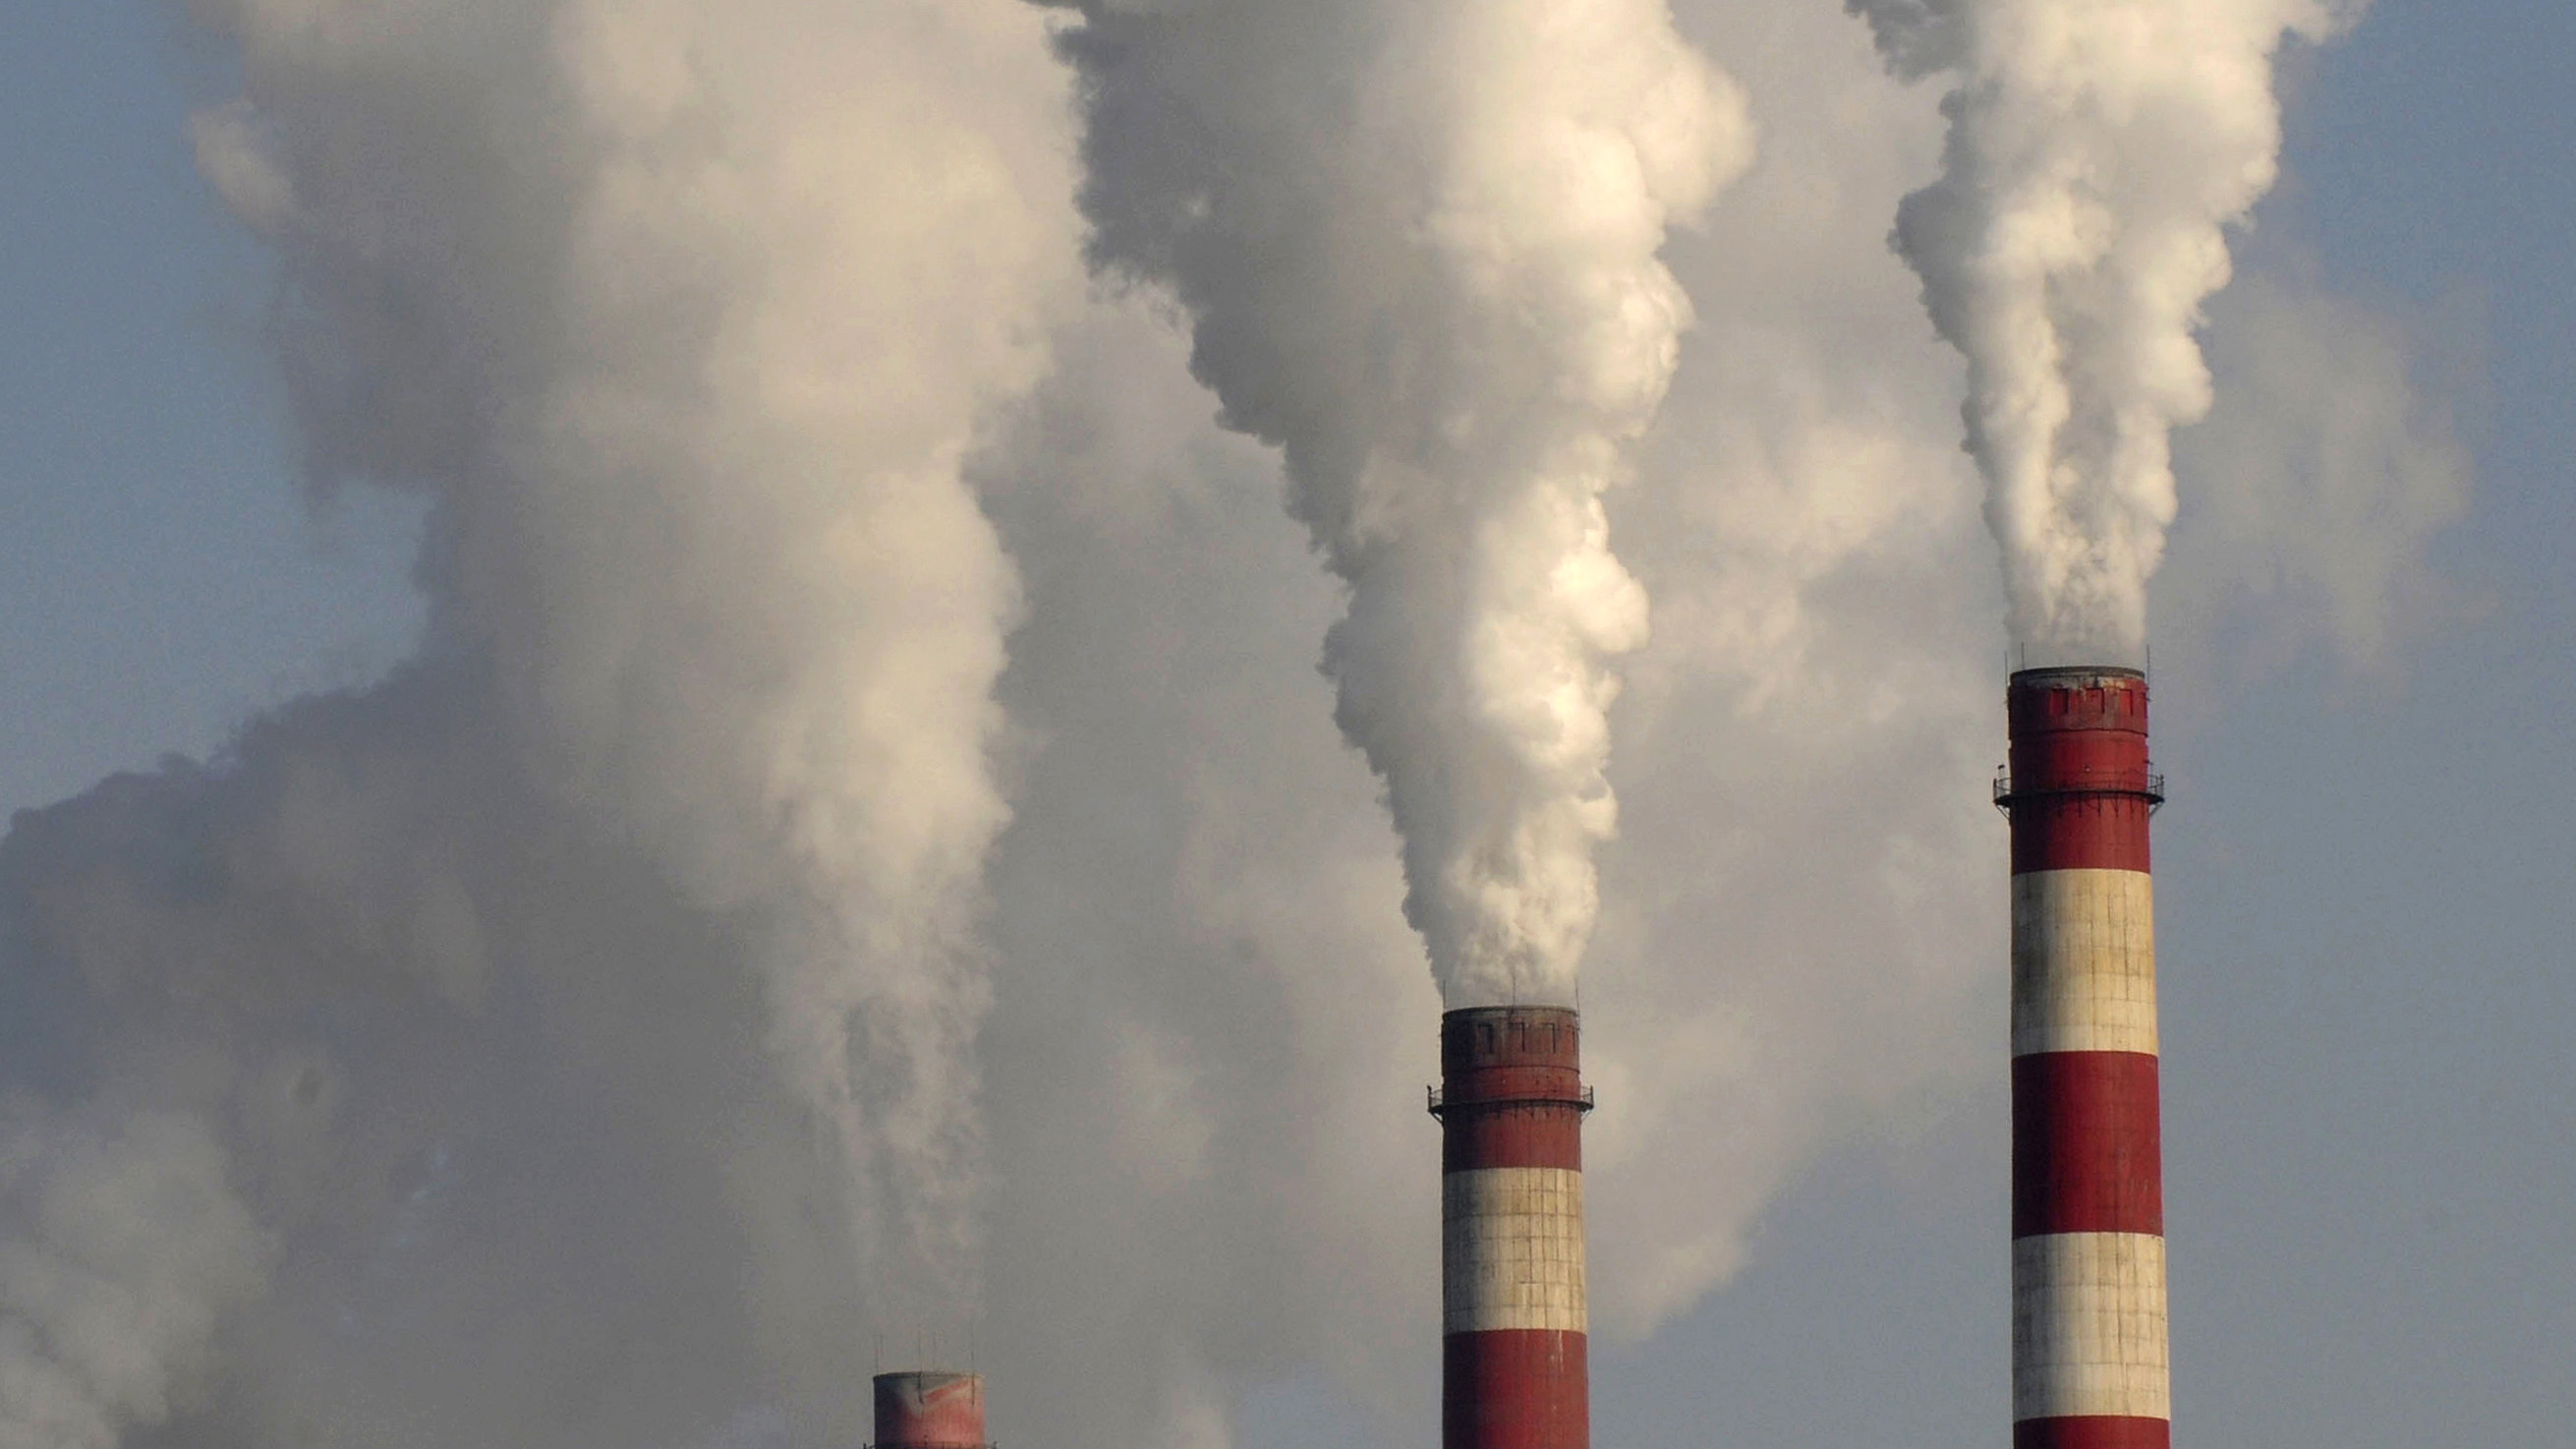 Smoke rises from chimneys of a power plant in Changzhi, Shanxi province November 17, 2009.